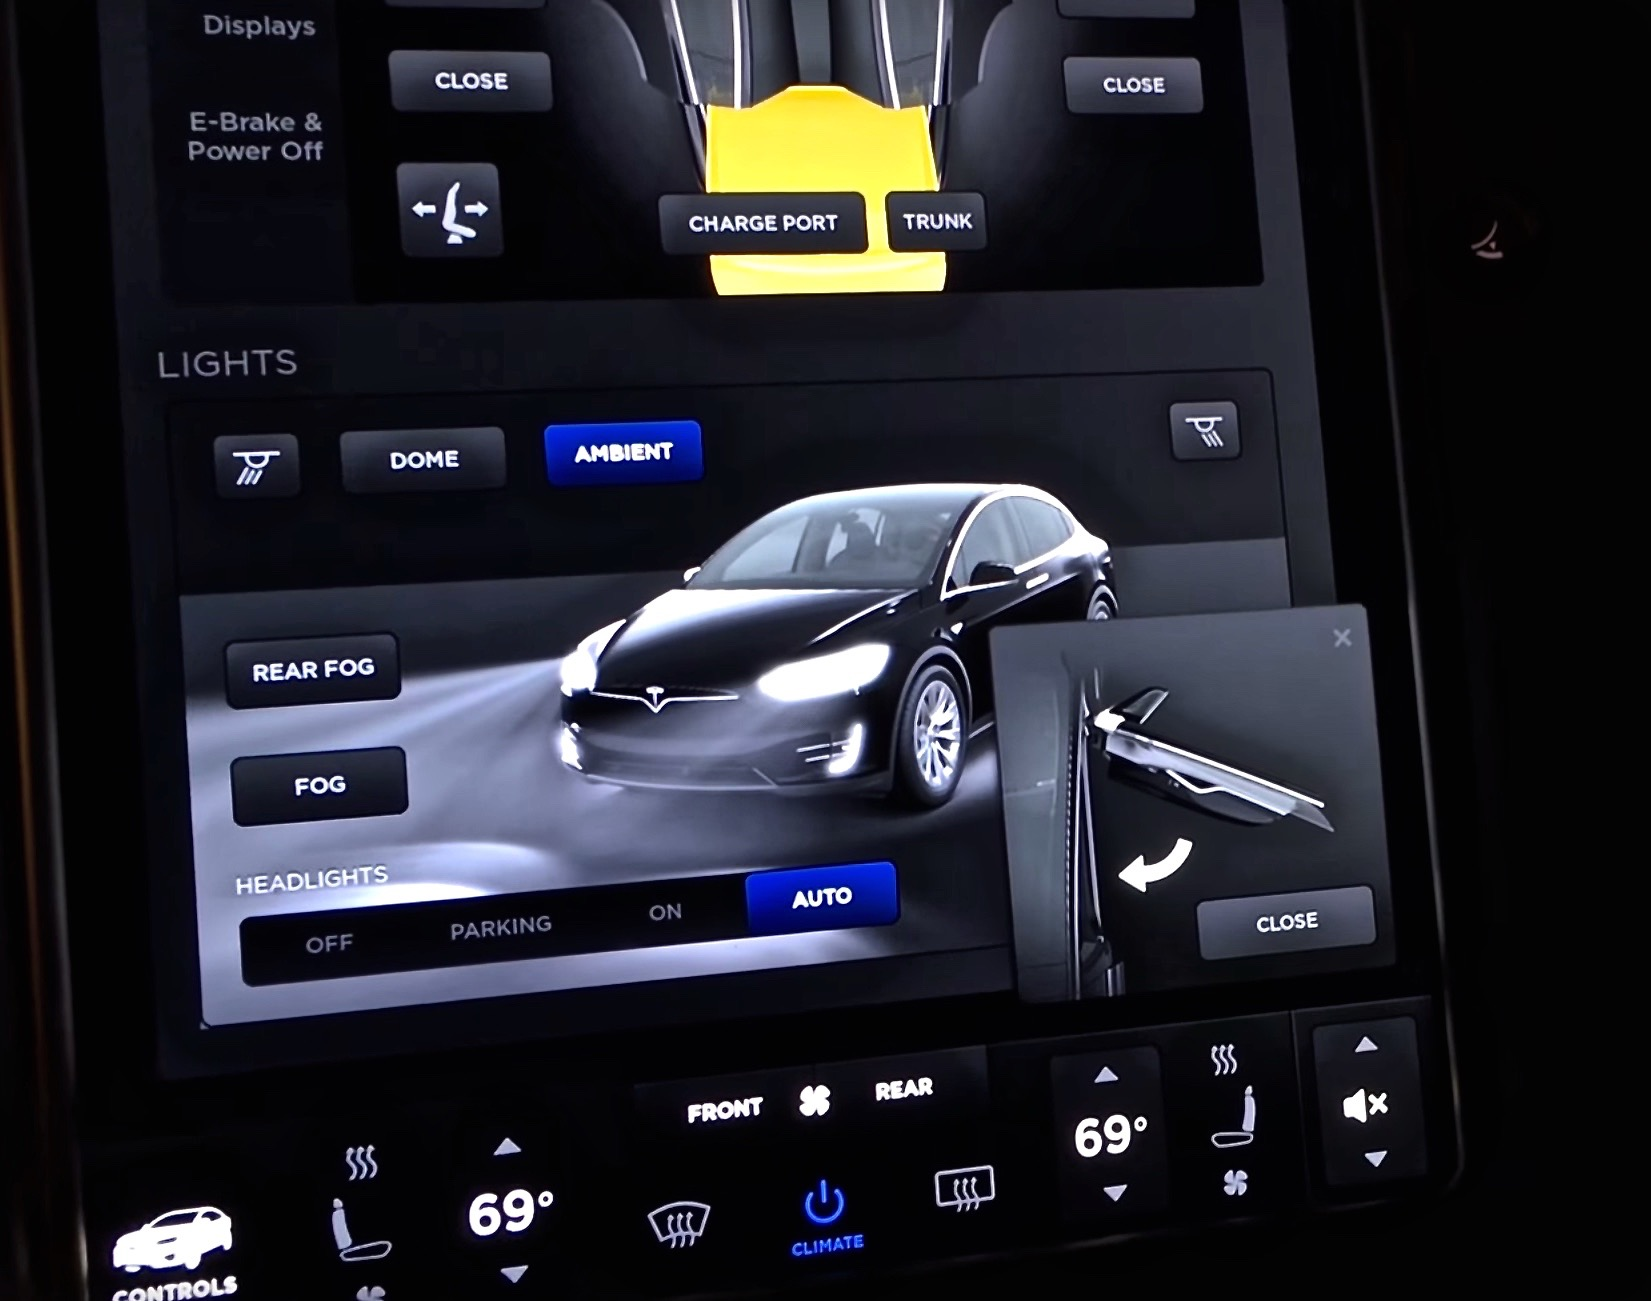 Tesla Model X Firmware 7.0 Controls